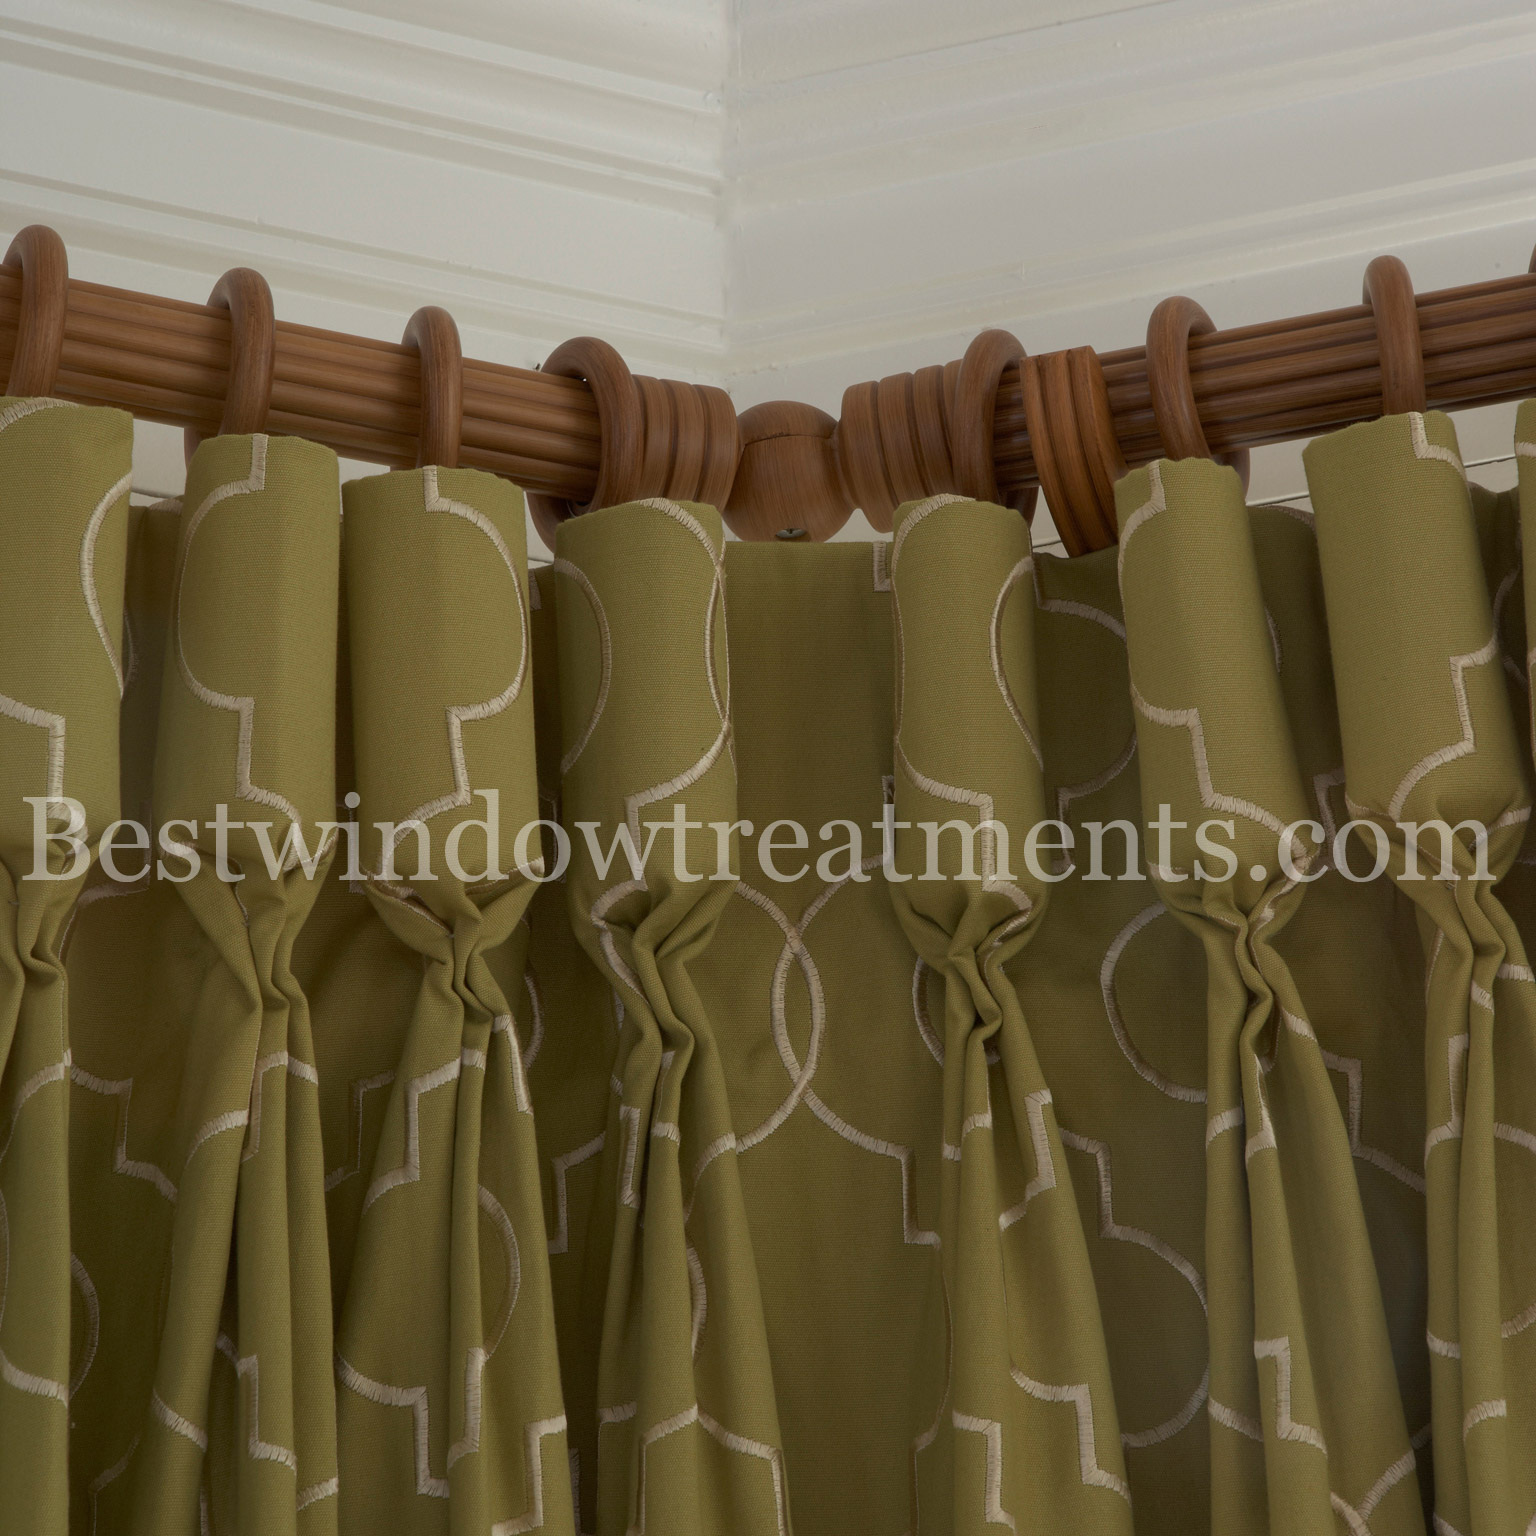 Corner Curtain Rods Bestwindowtreatments